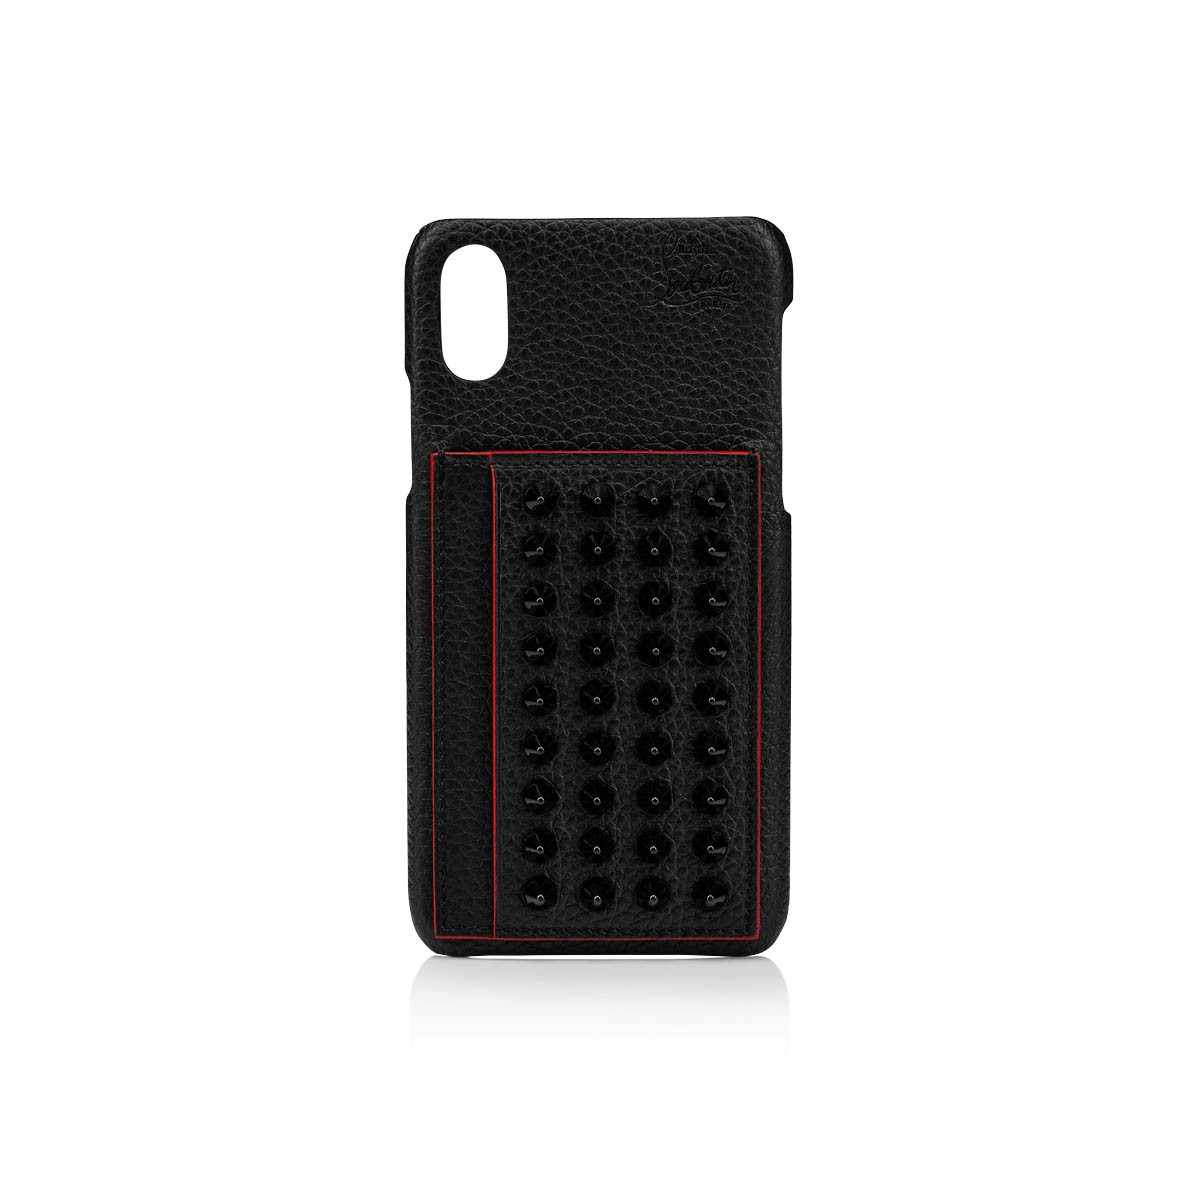 Petite Maroquinerie - Loubiphone Coque Iphone X/xs - Christian Louboutin